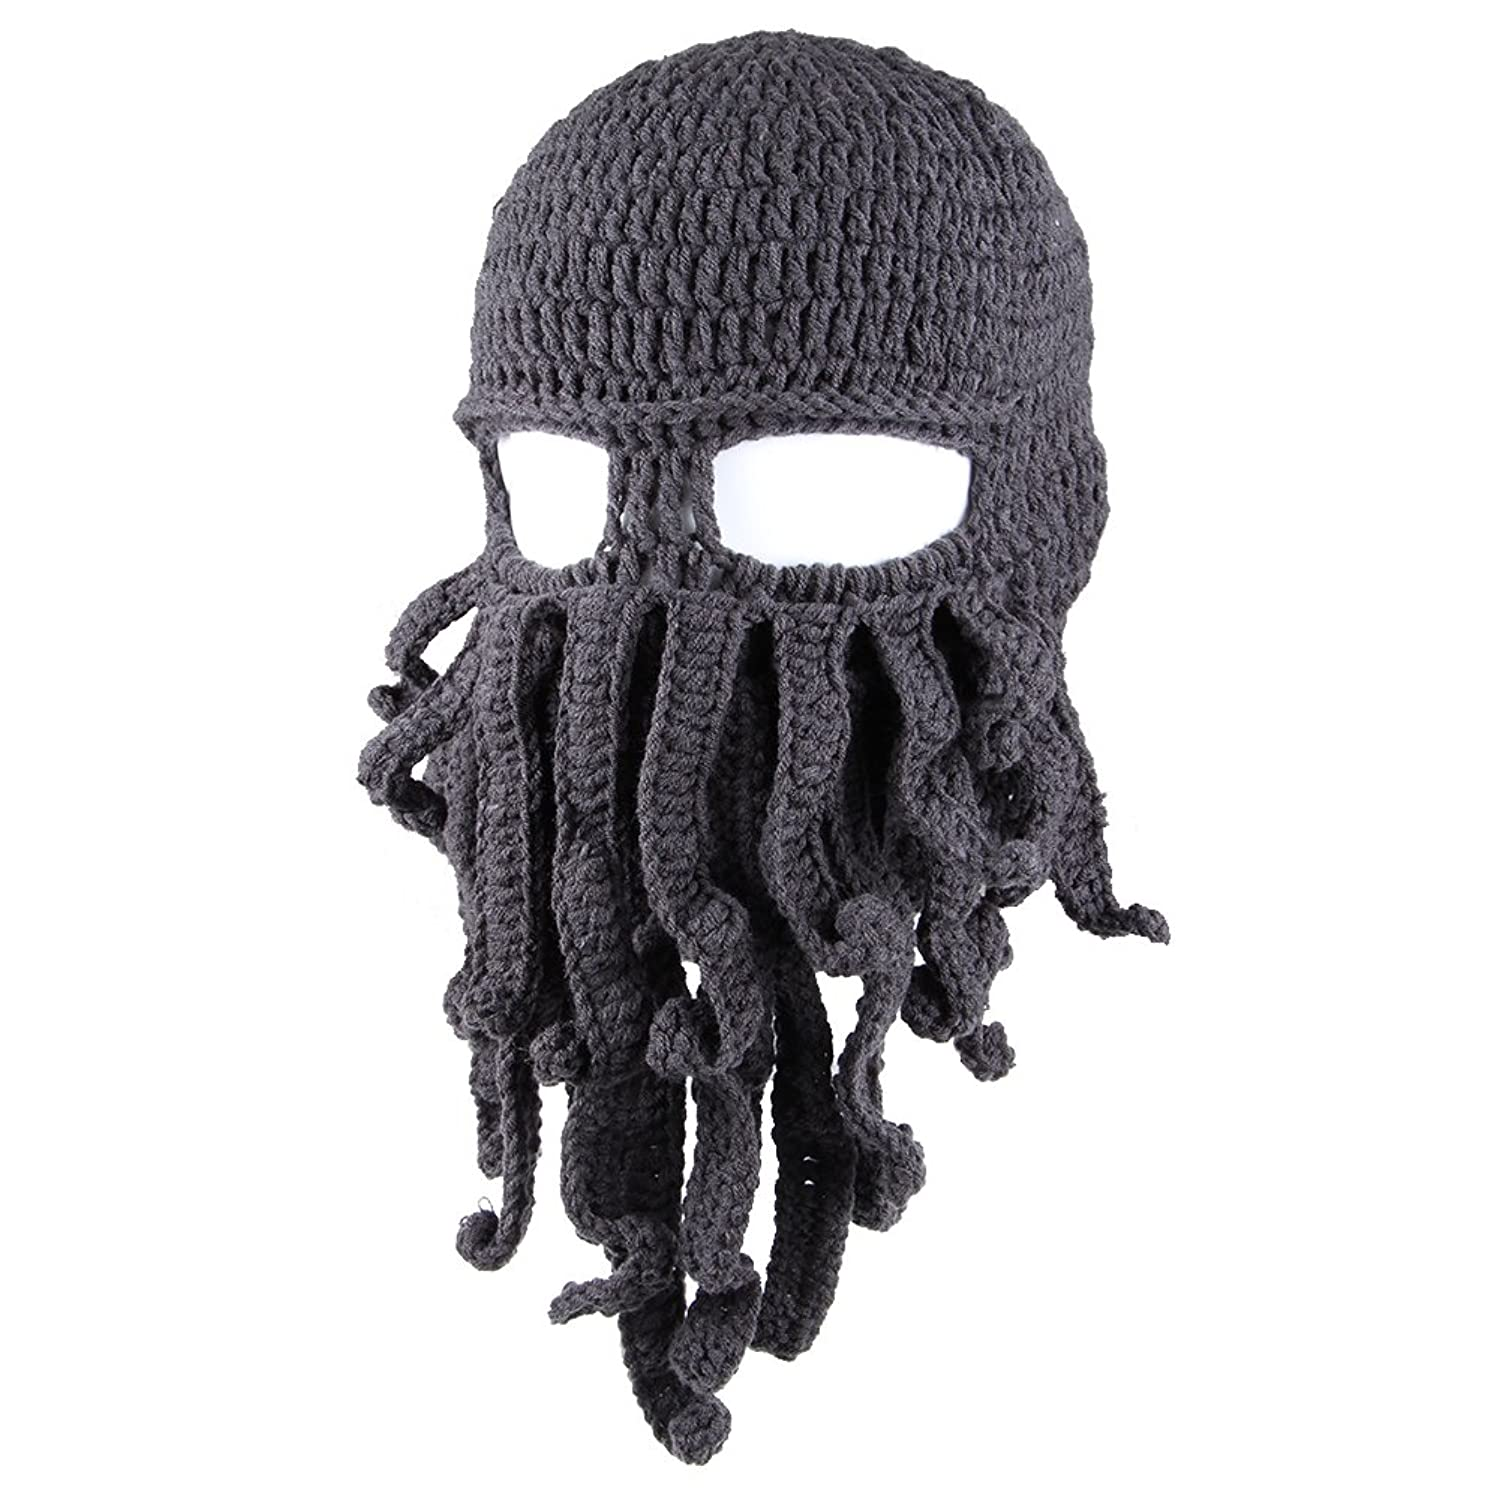 Barbarian Octopus Knit Beanie.